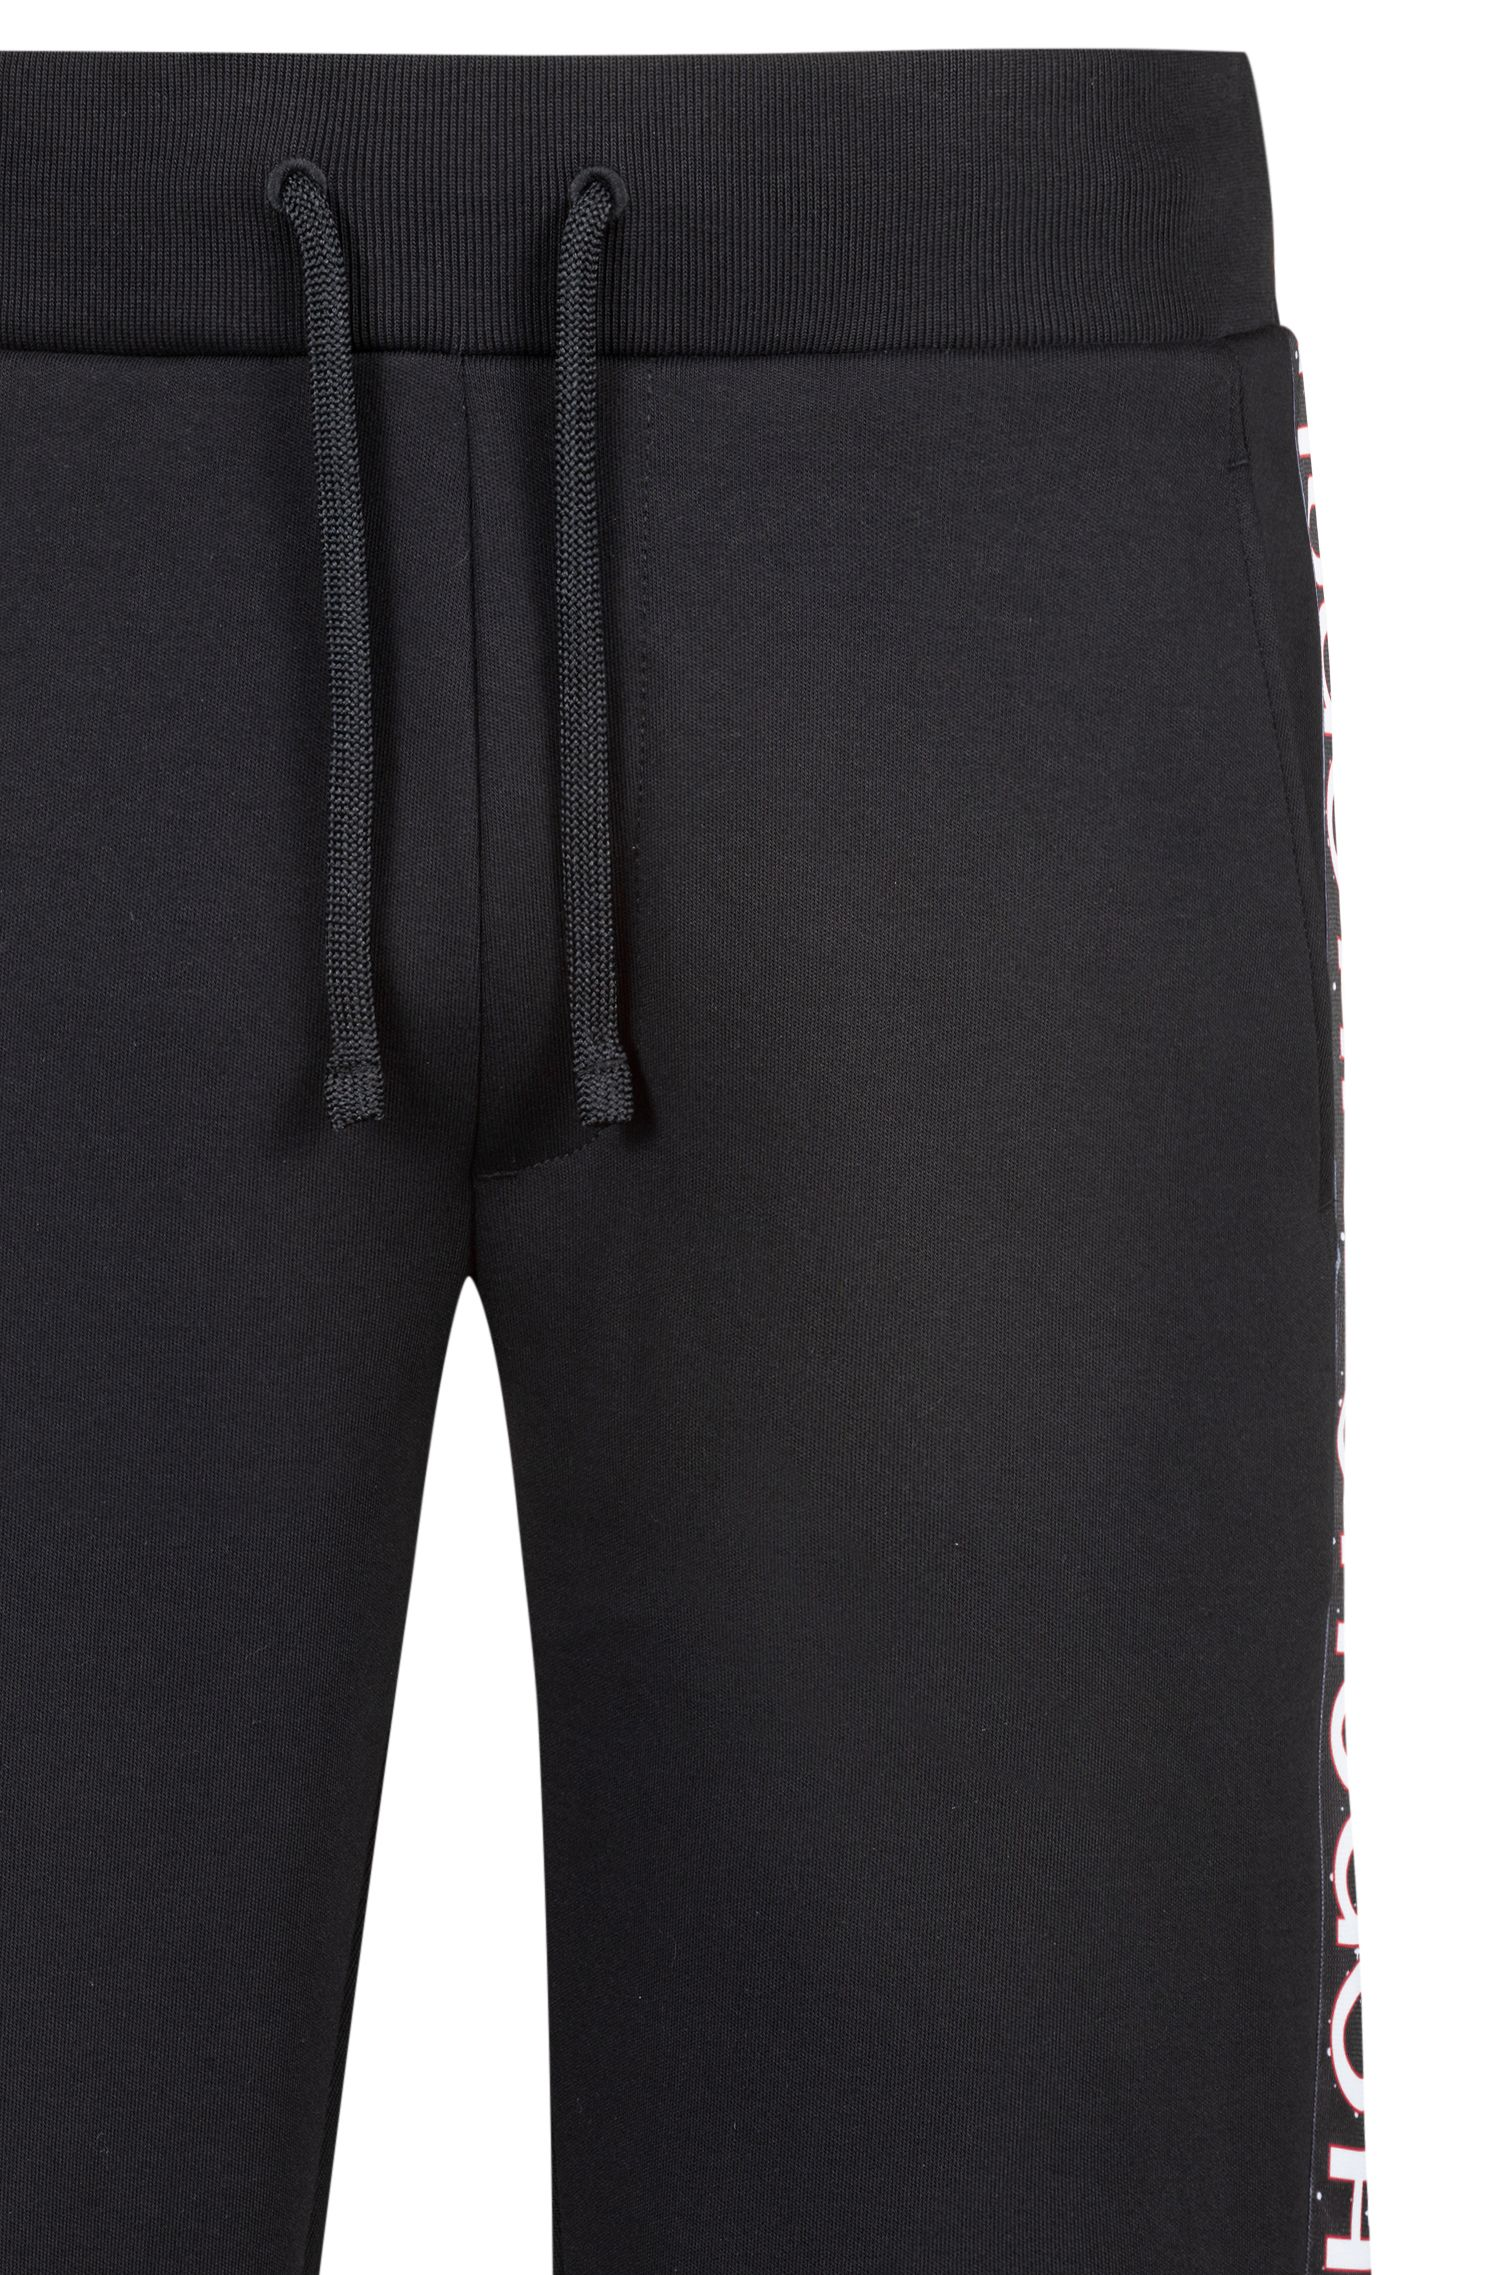 Relaxed-fit jersey trousers in cotton with logo tape, Black